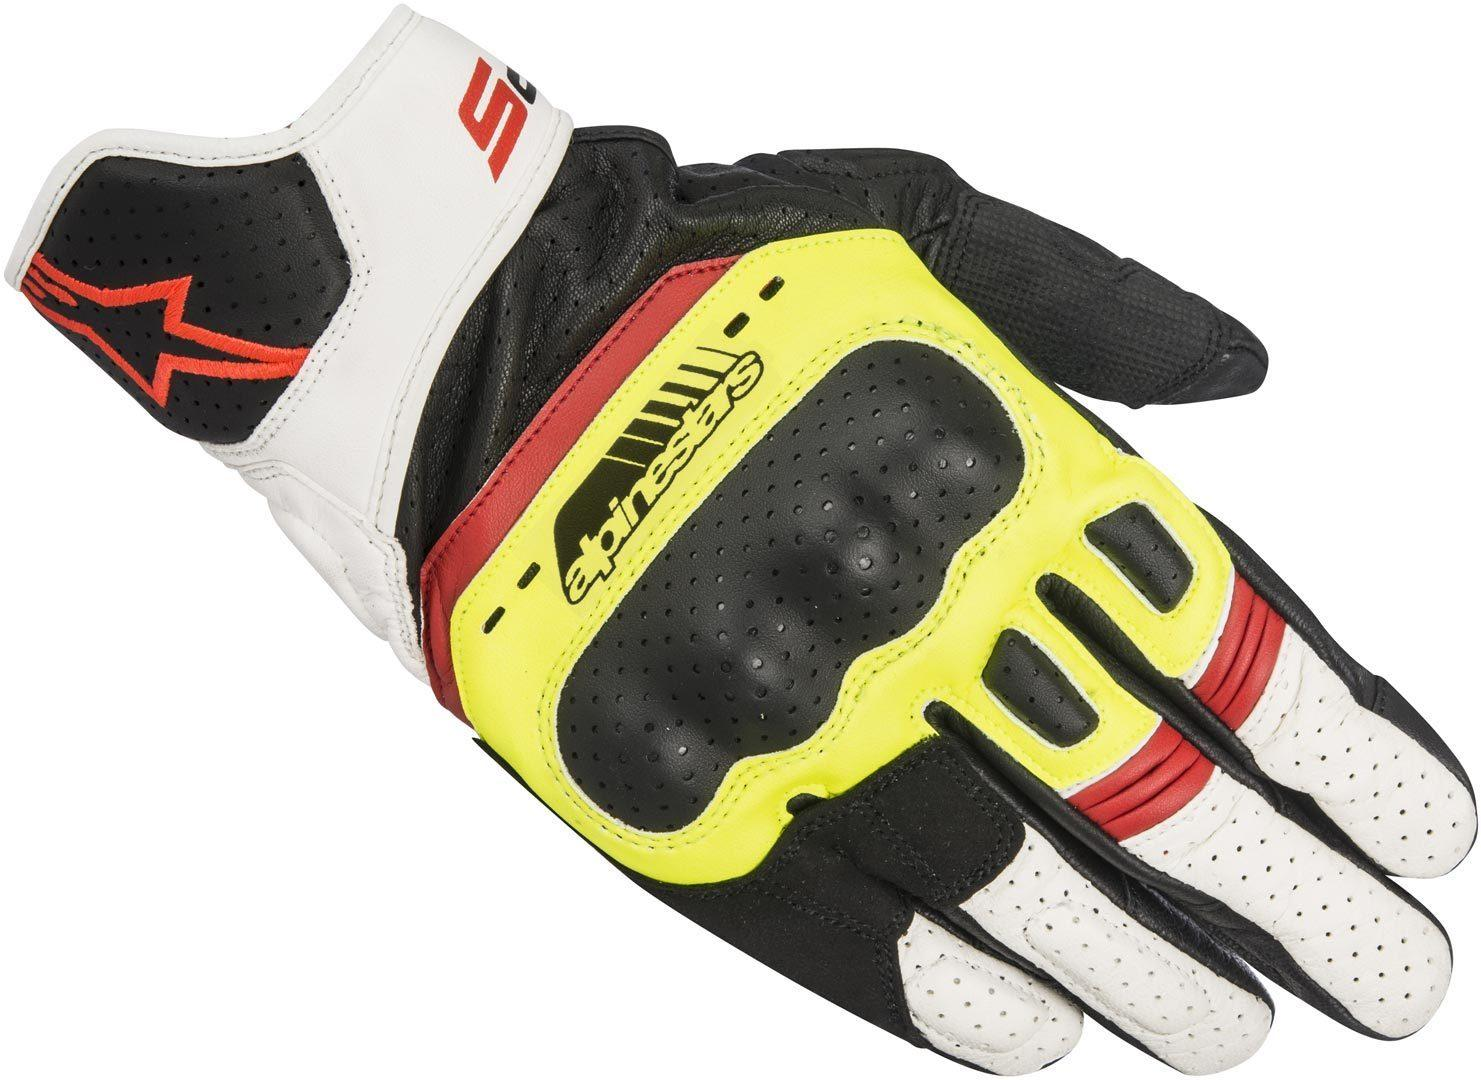 GUANTI MOTO IN PELLE ALPINESTARS SP-5 BLACK YELLOW FLUO WHITE RED FLUO COD 3558517